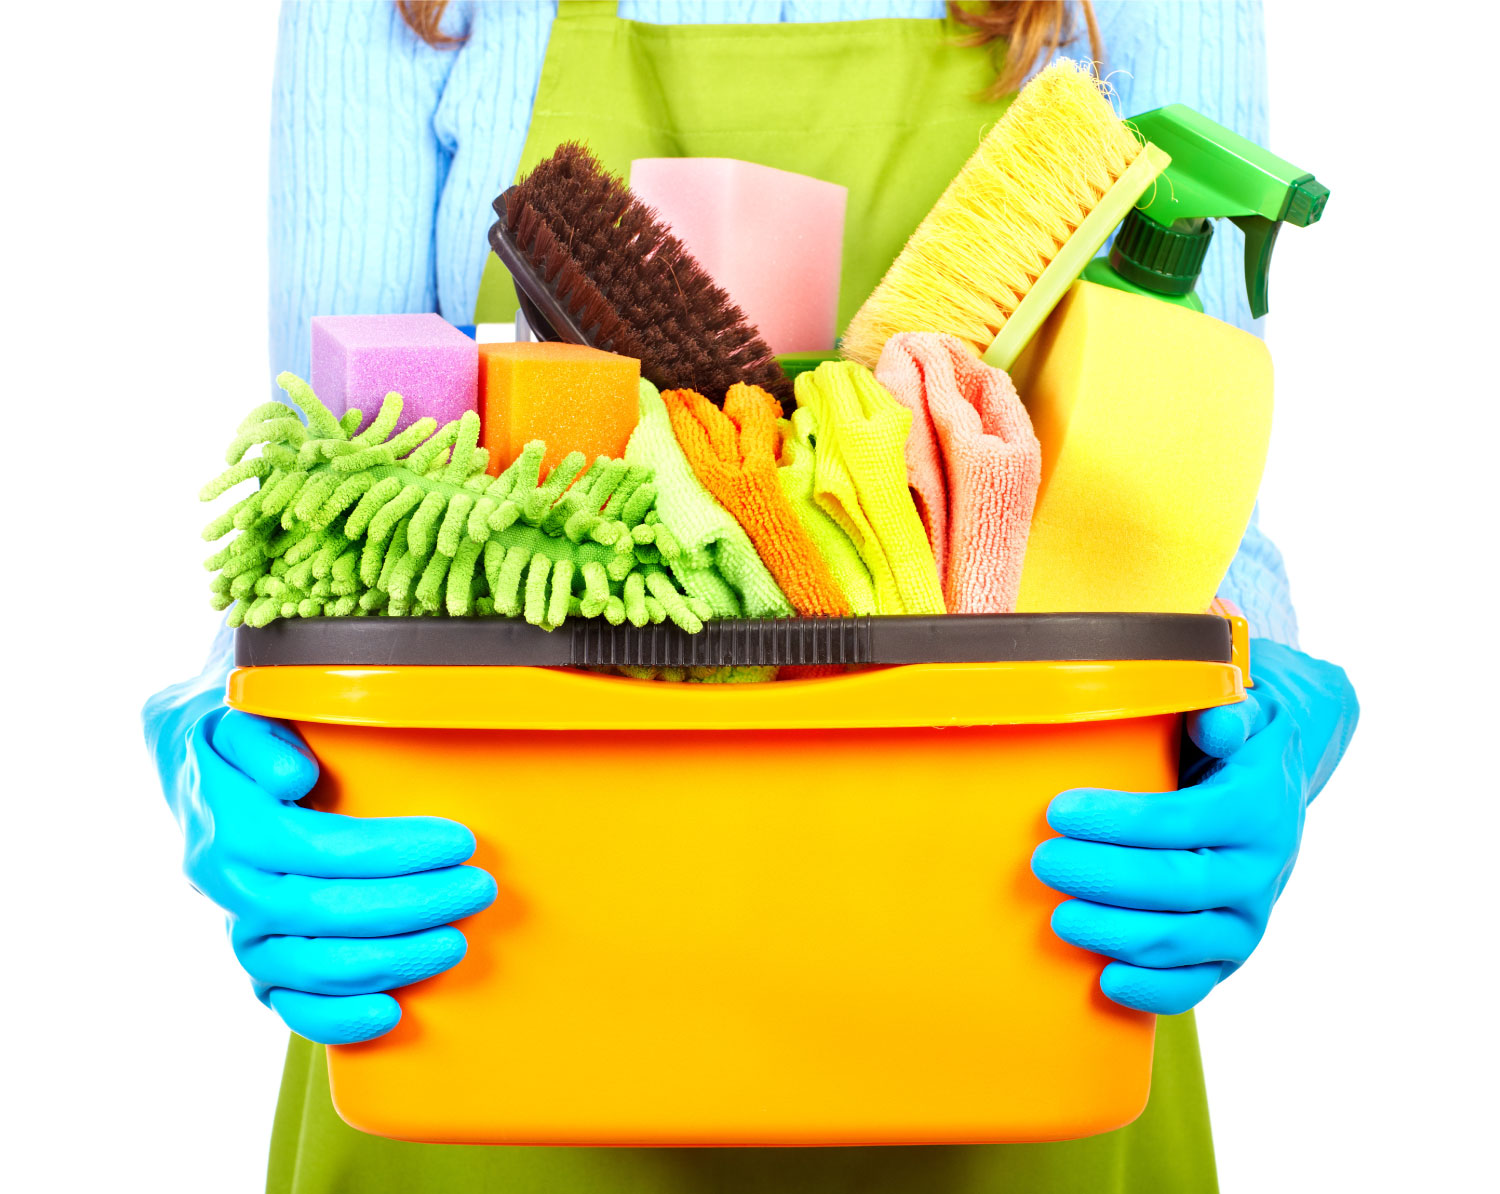 a close-up of bucket filled with cleaning equipment being held by someone wearing rubber gloves